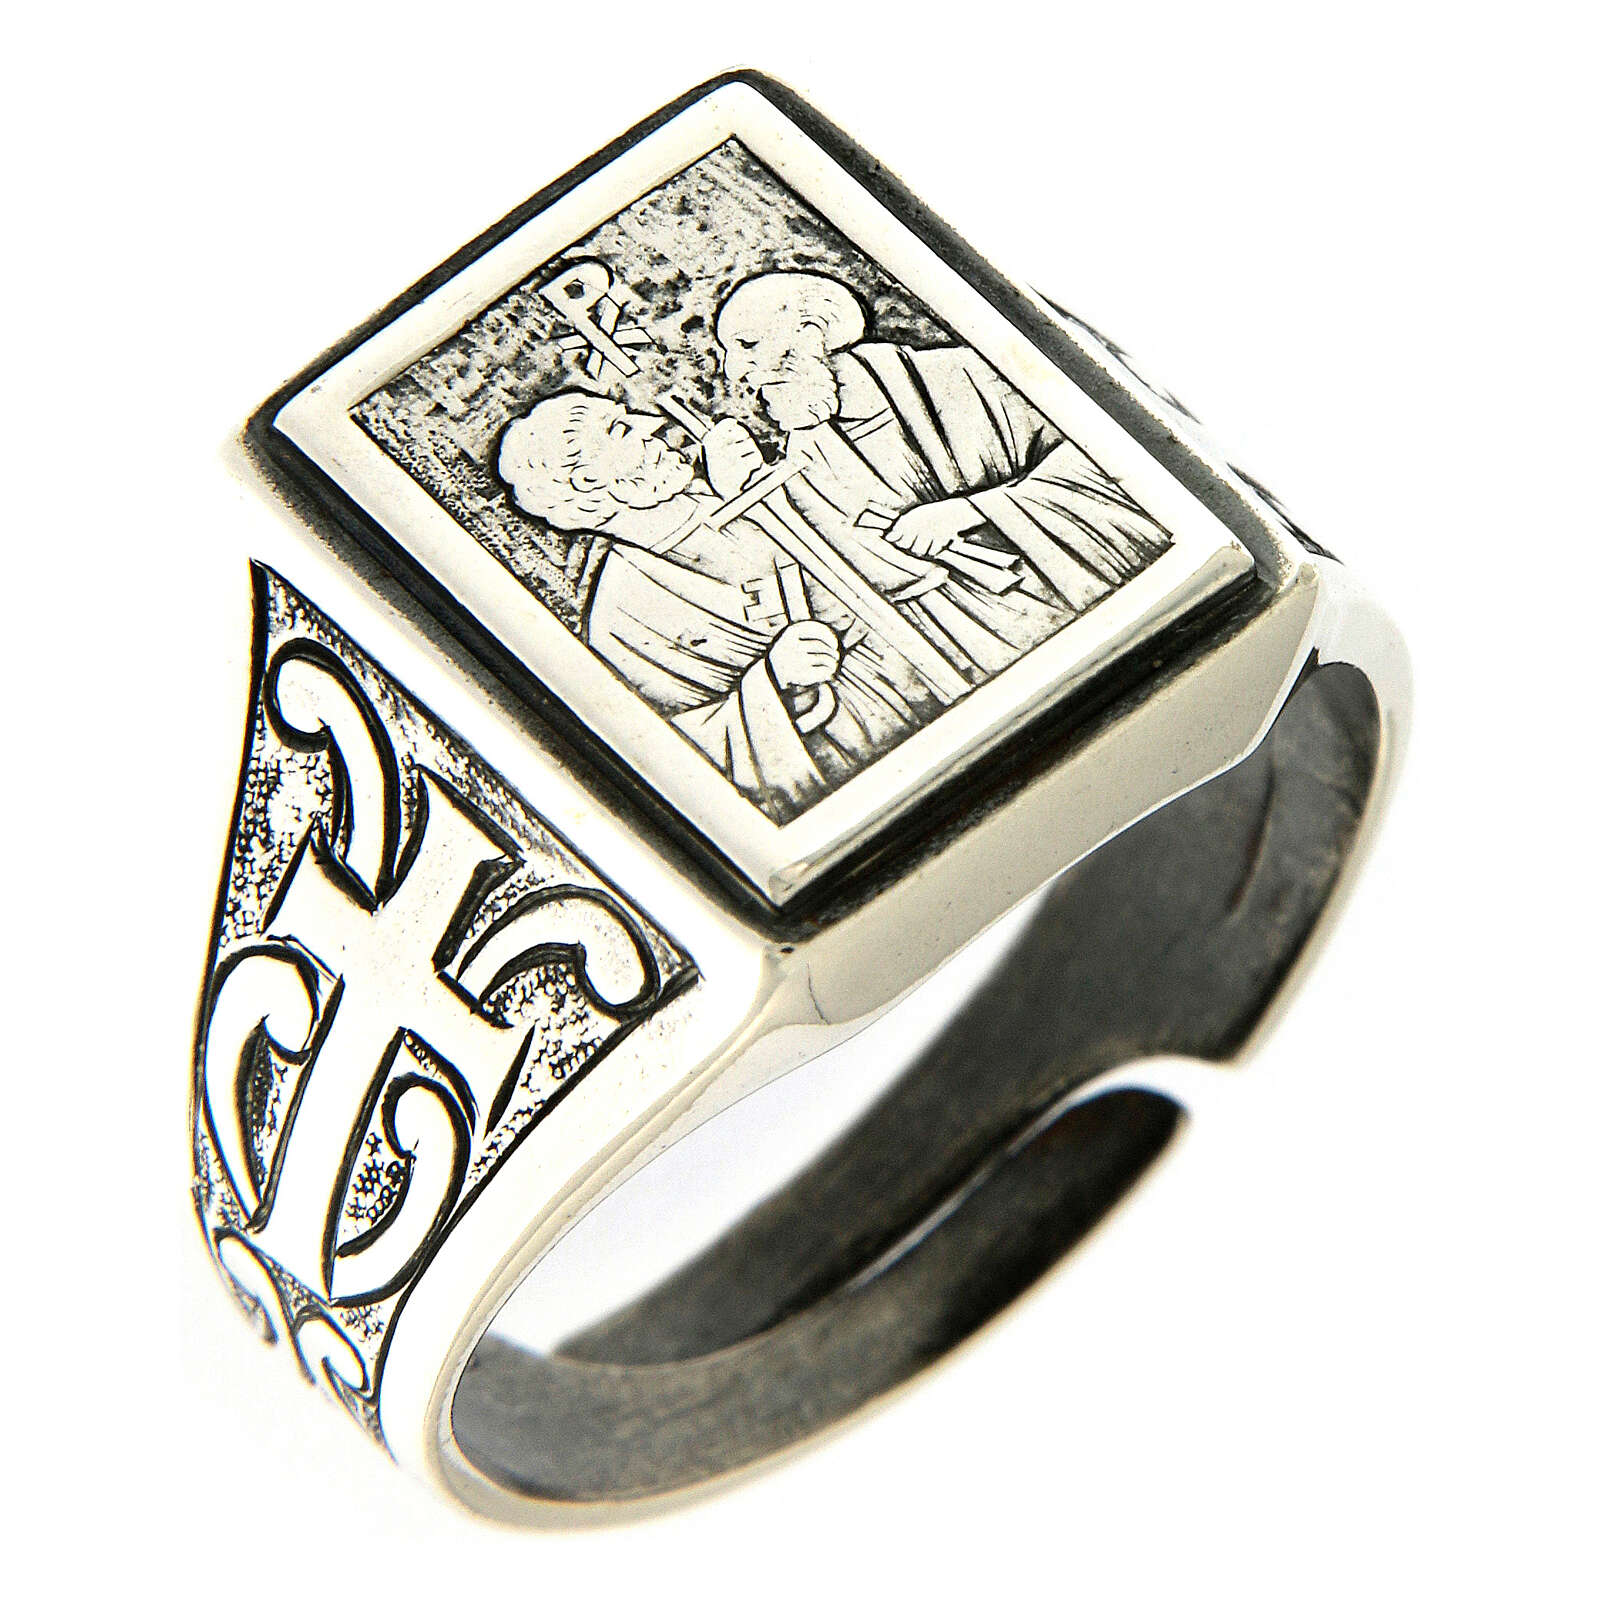 Saint Peter and Saint Paul ring in sterling silver 3